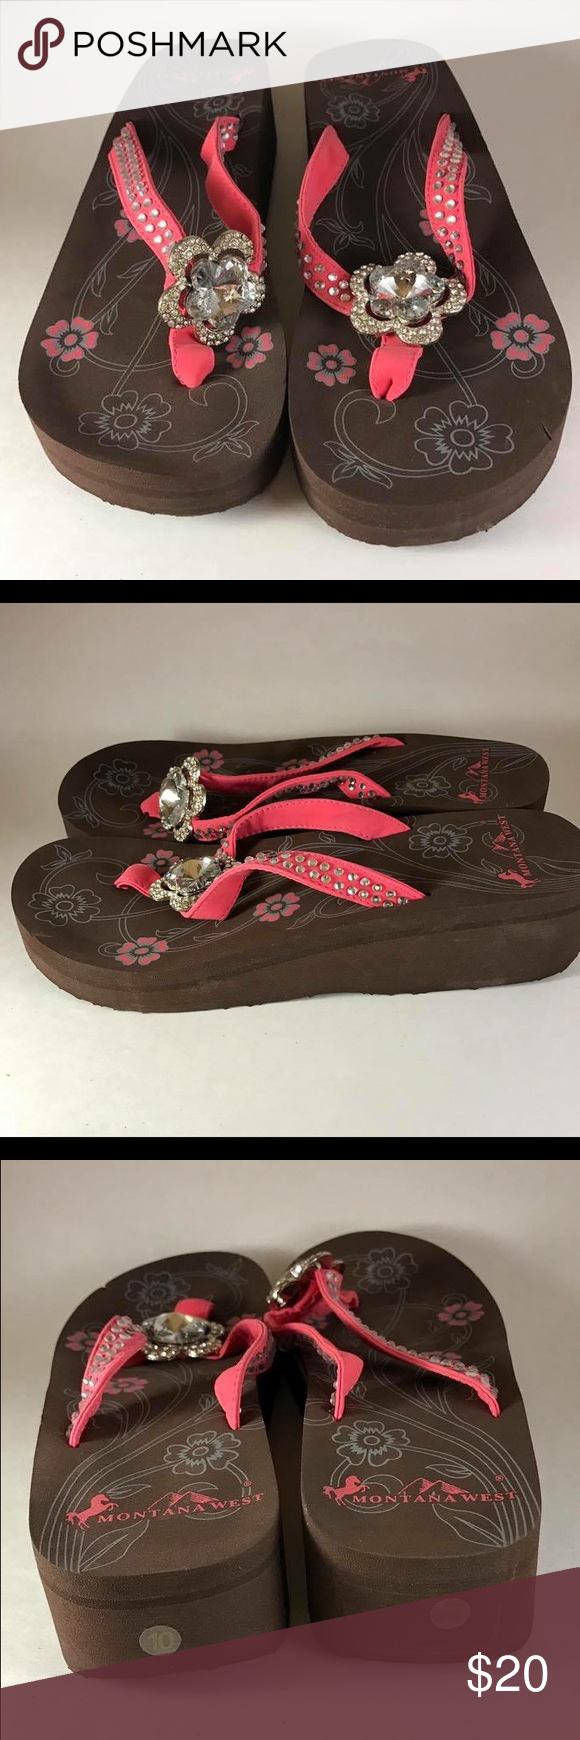 NWT Montana West Flip Flops These are NWT Montana West Boutique Flip Flops! Never been worn and comes in original box! Perfect for summer and adding a little sparkle to your day! Same day shipping!!! Montana West Shoes Sandals